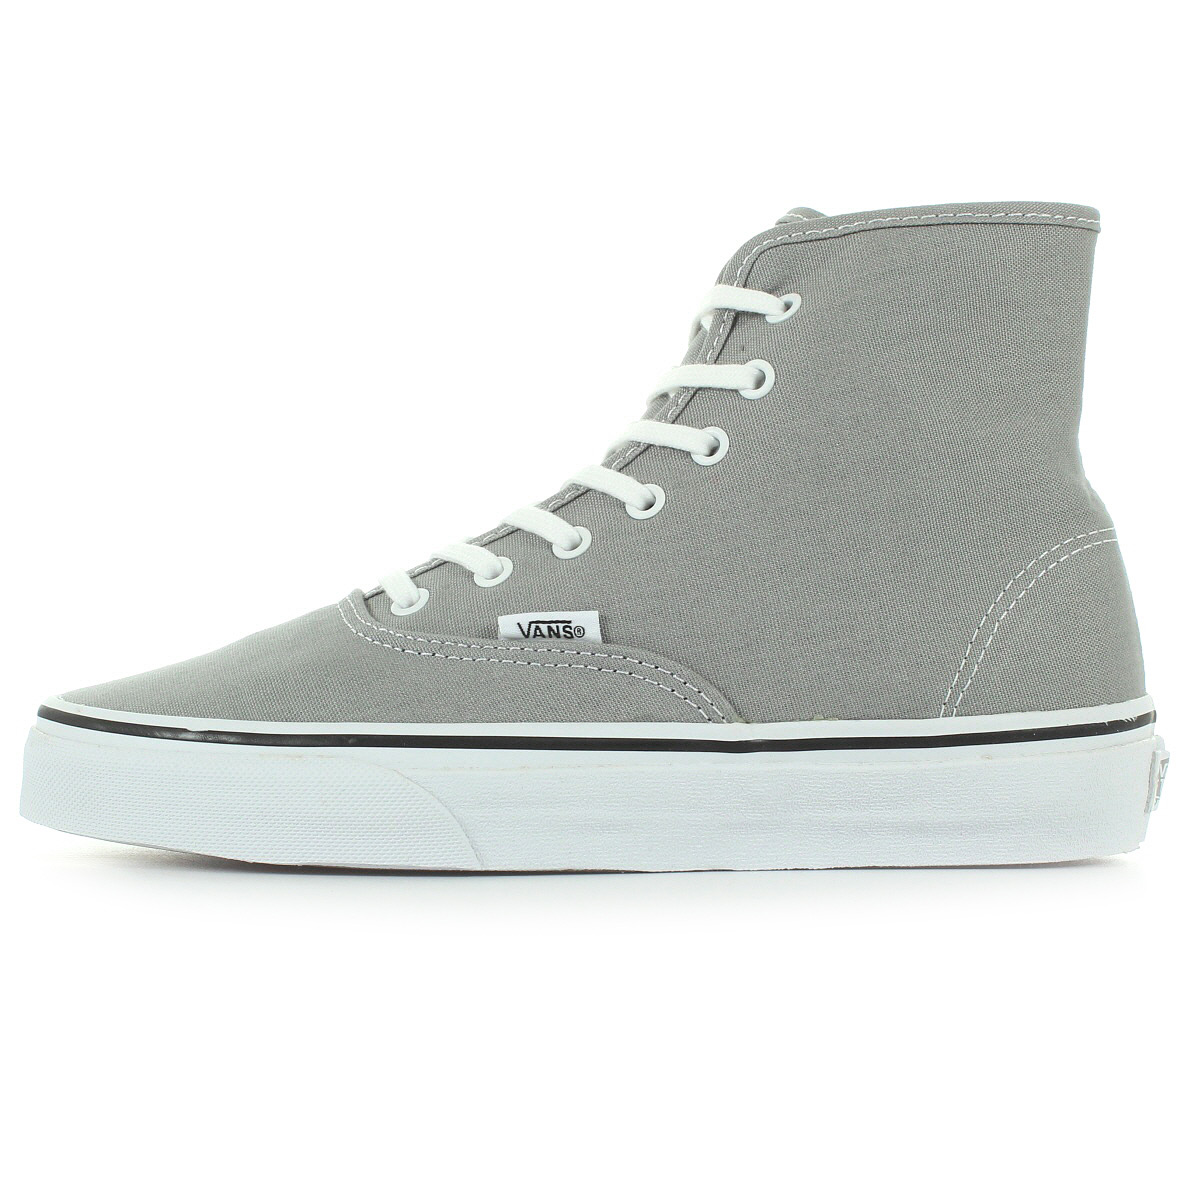 Vans Authentic Hi VN0RQFLNQF, Baskets mode femme